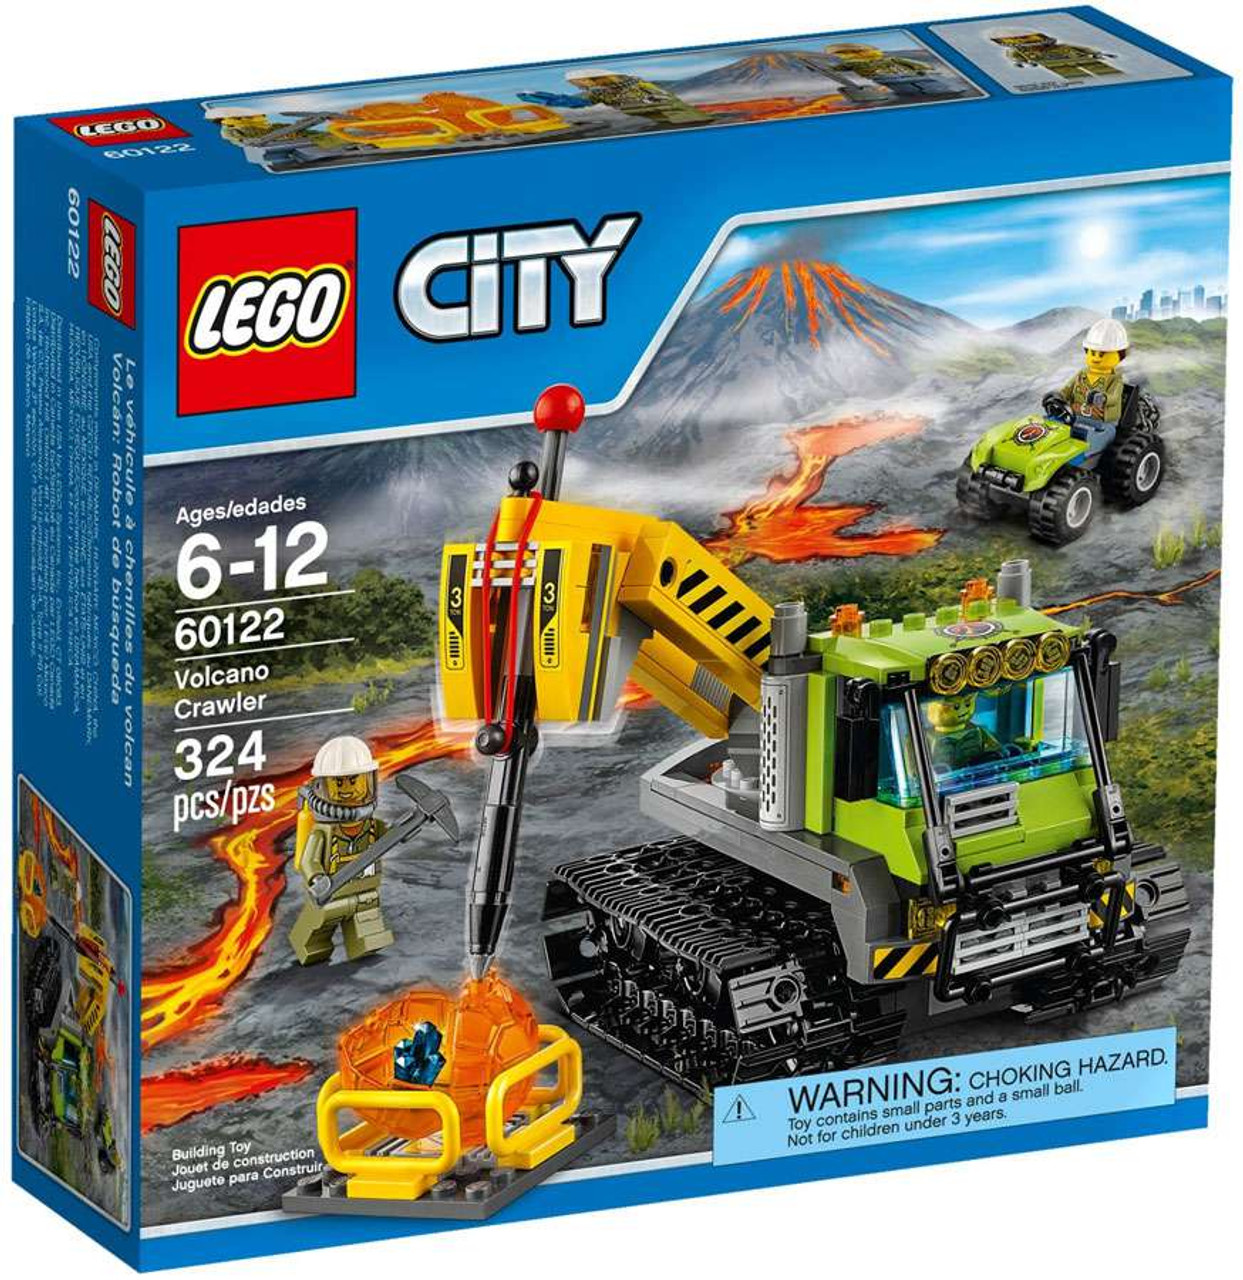 Pin lego 60032 city the lego summer wave in official images on - Lego City Volcano Crawler Set 60122